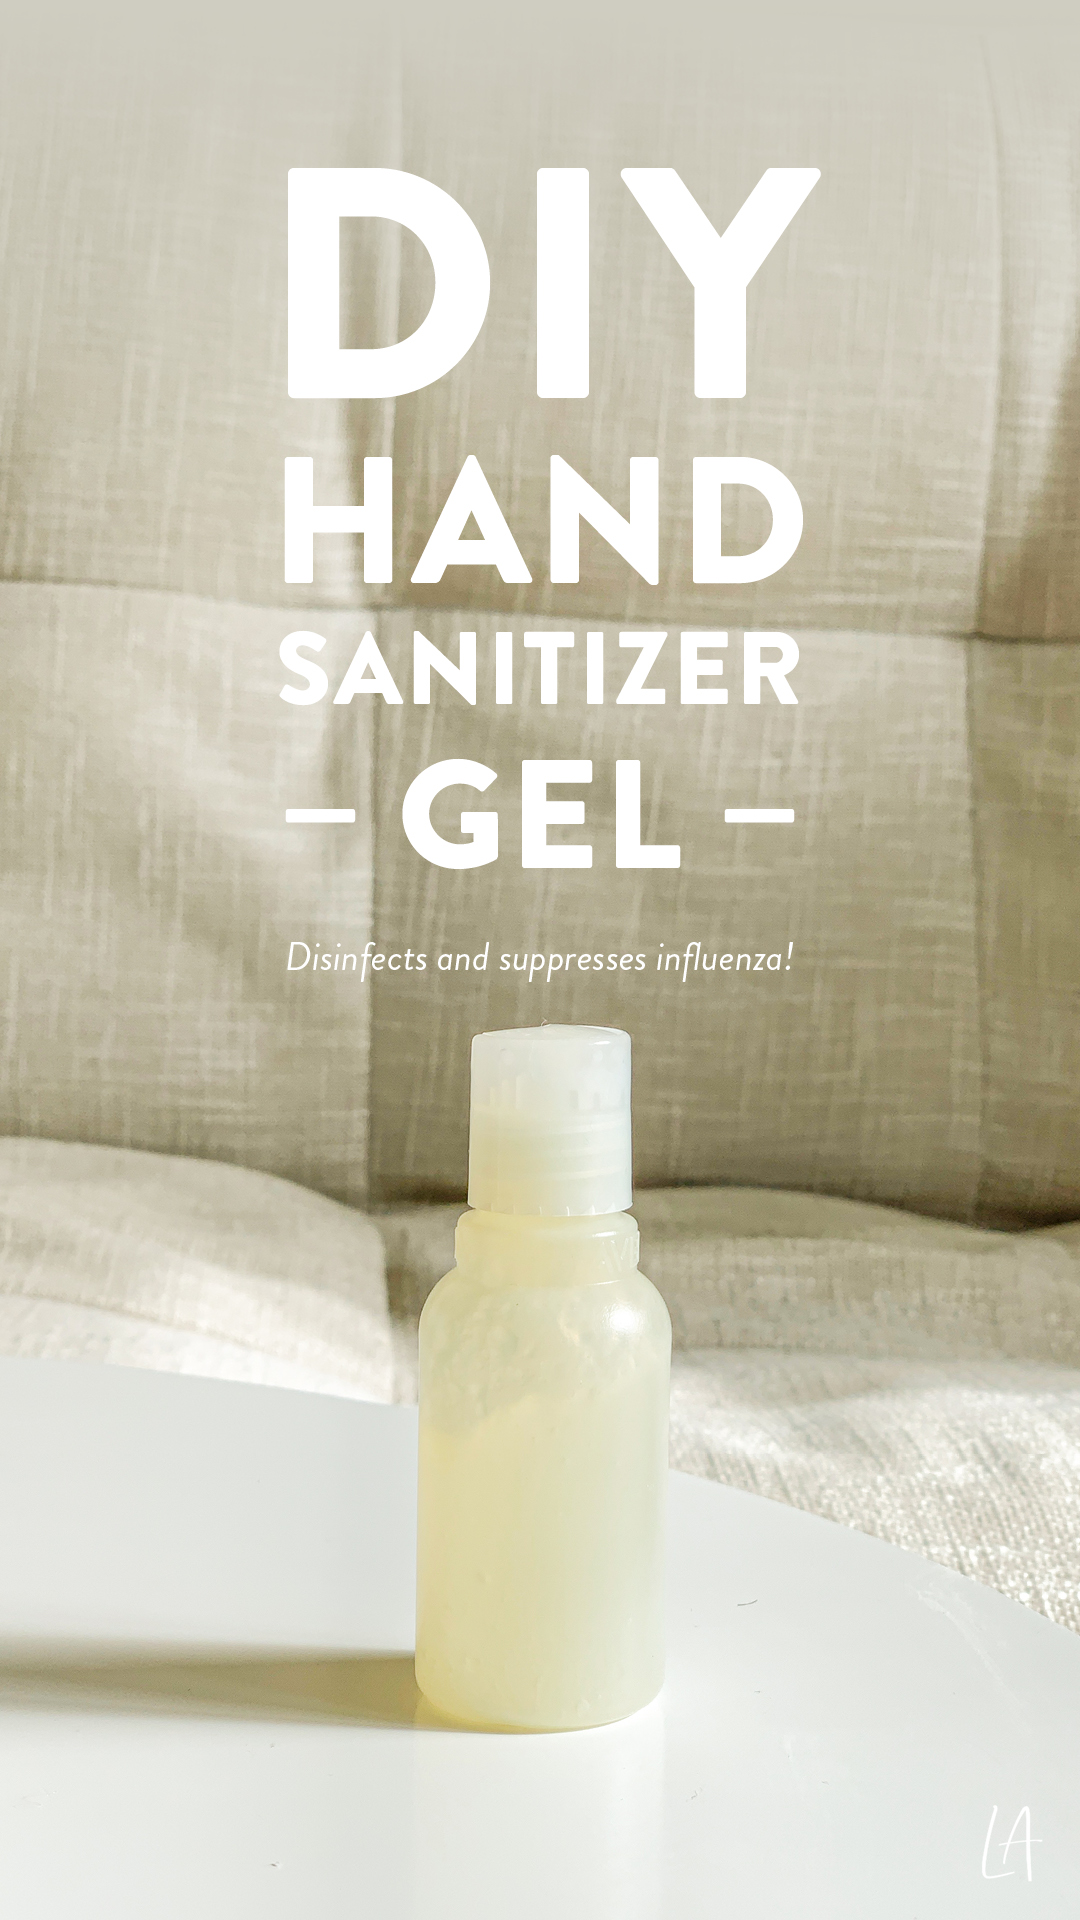 DIY Hand Sanitizer gel